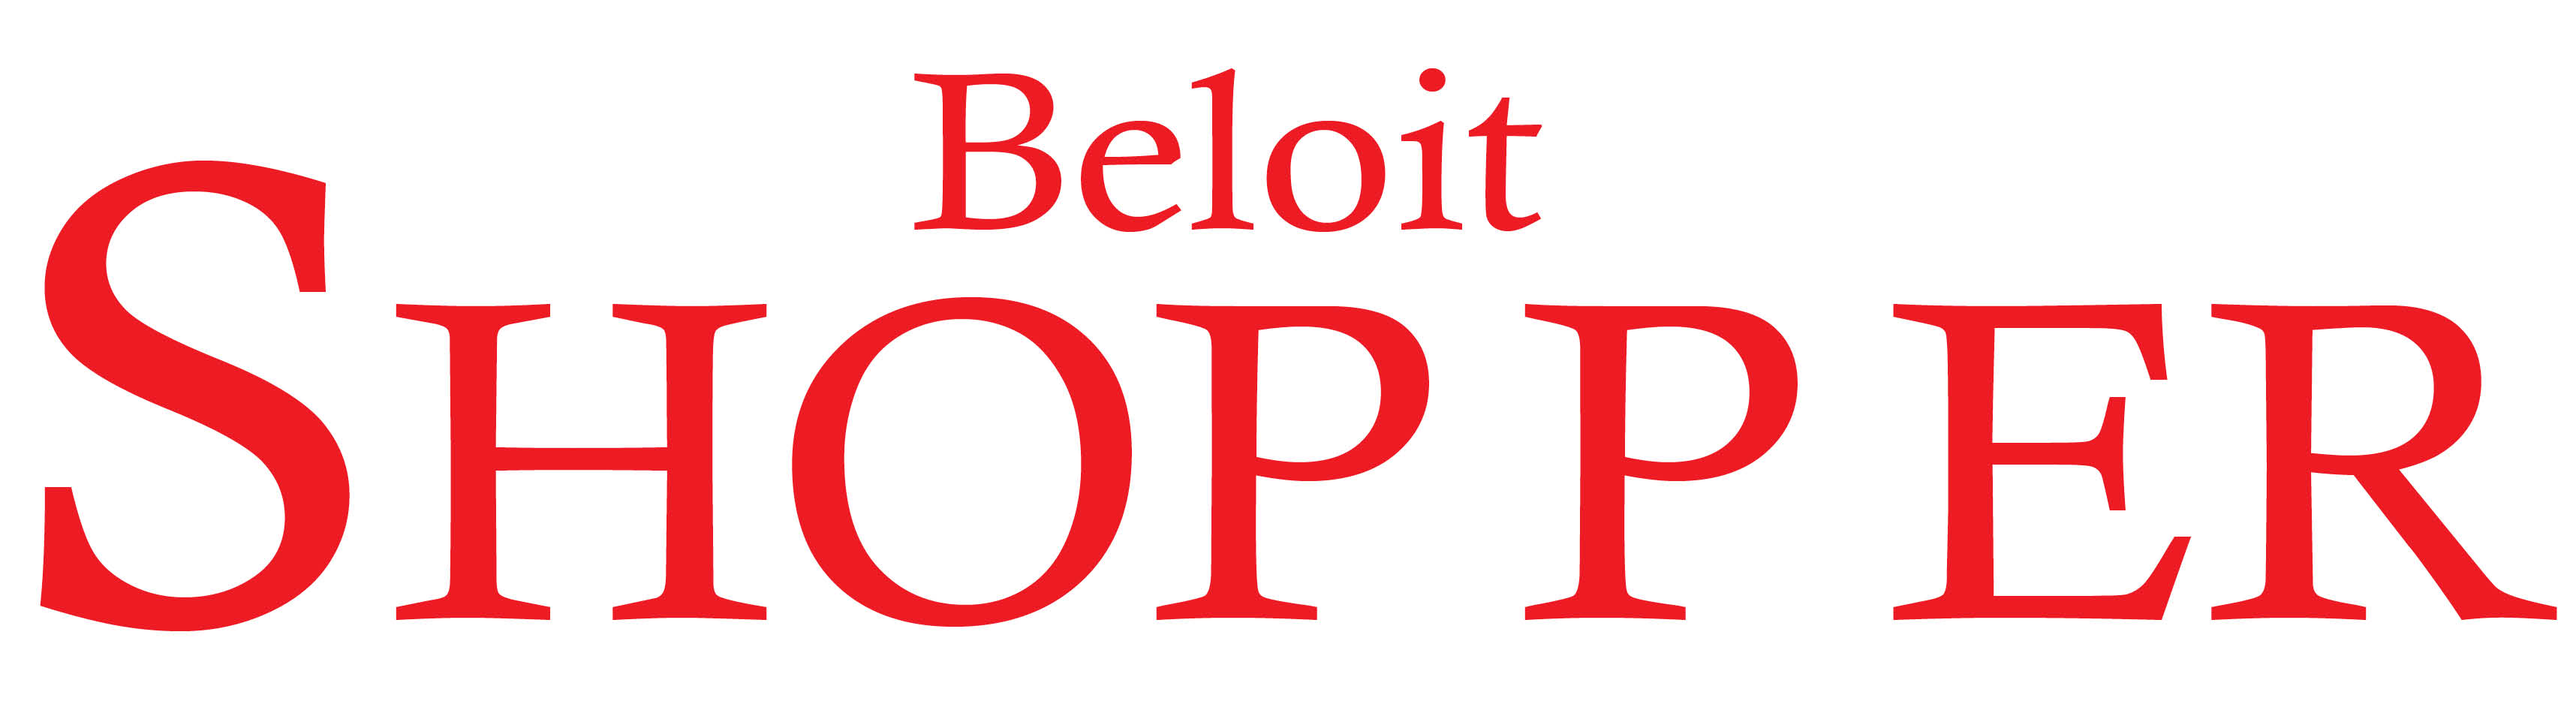 8/2/18 Beloit Shopper